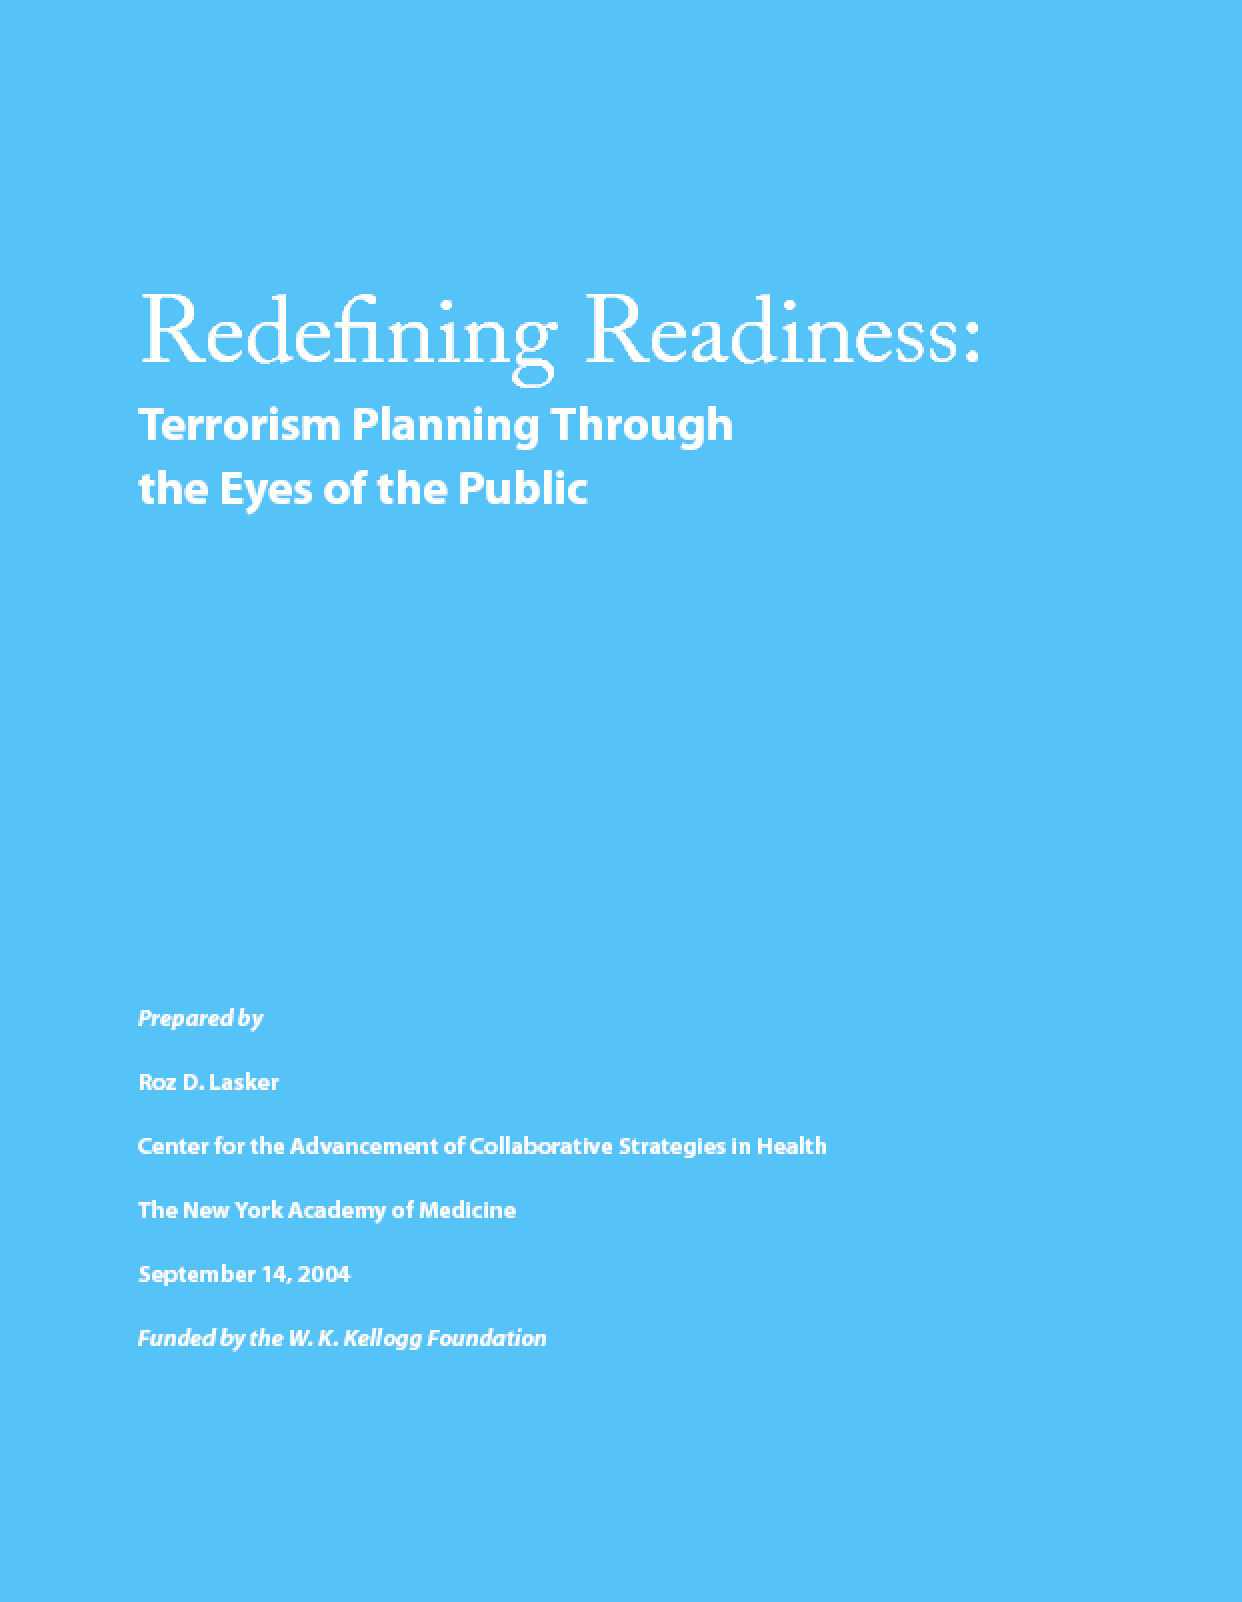 Redefining Readiness: Terrorism Planning Through the Eyes of the Public